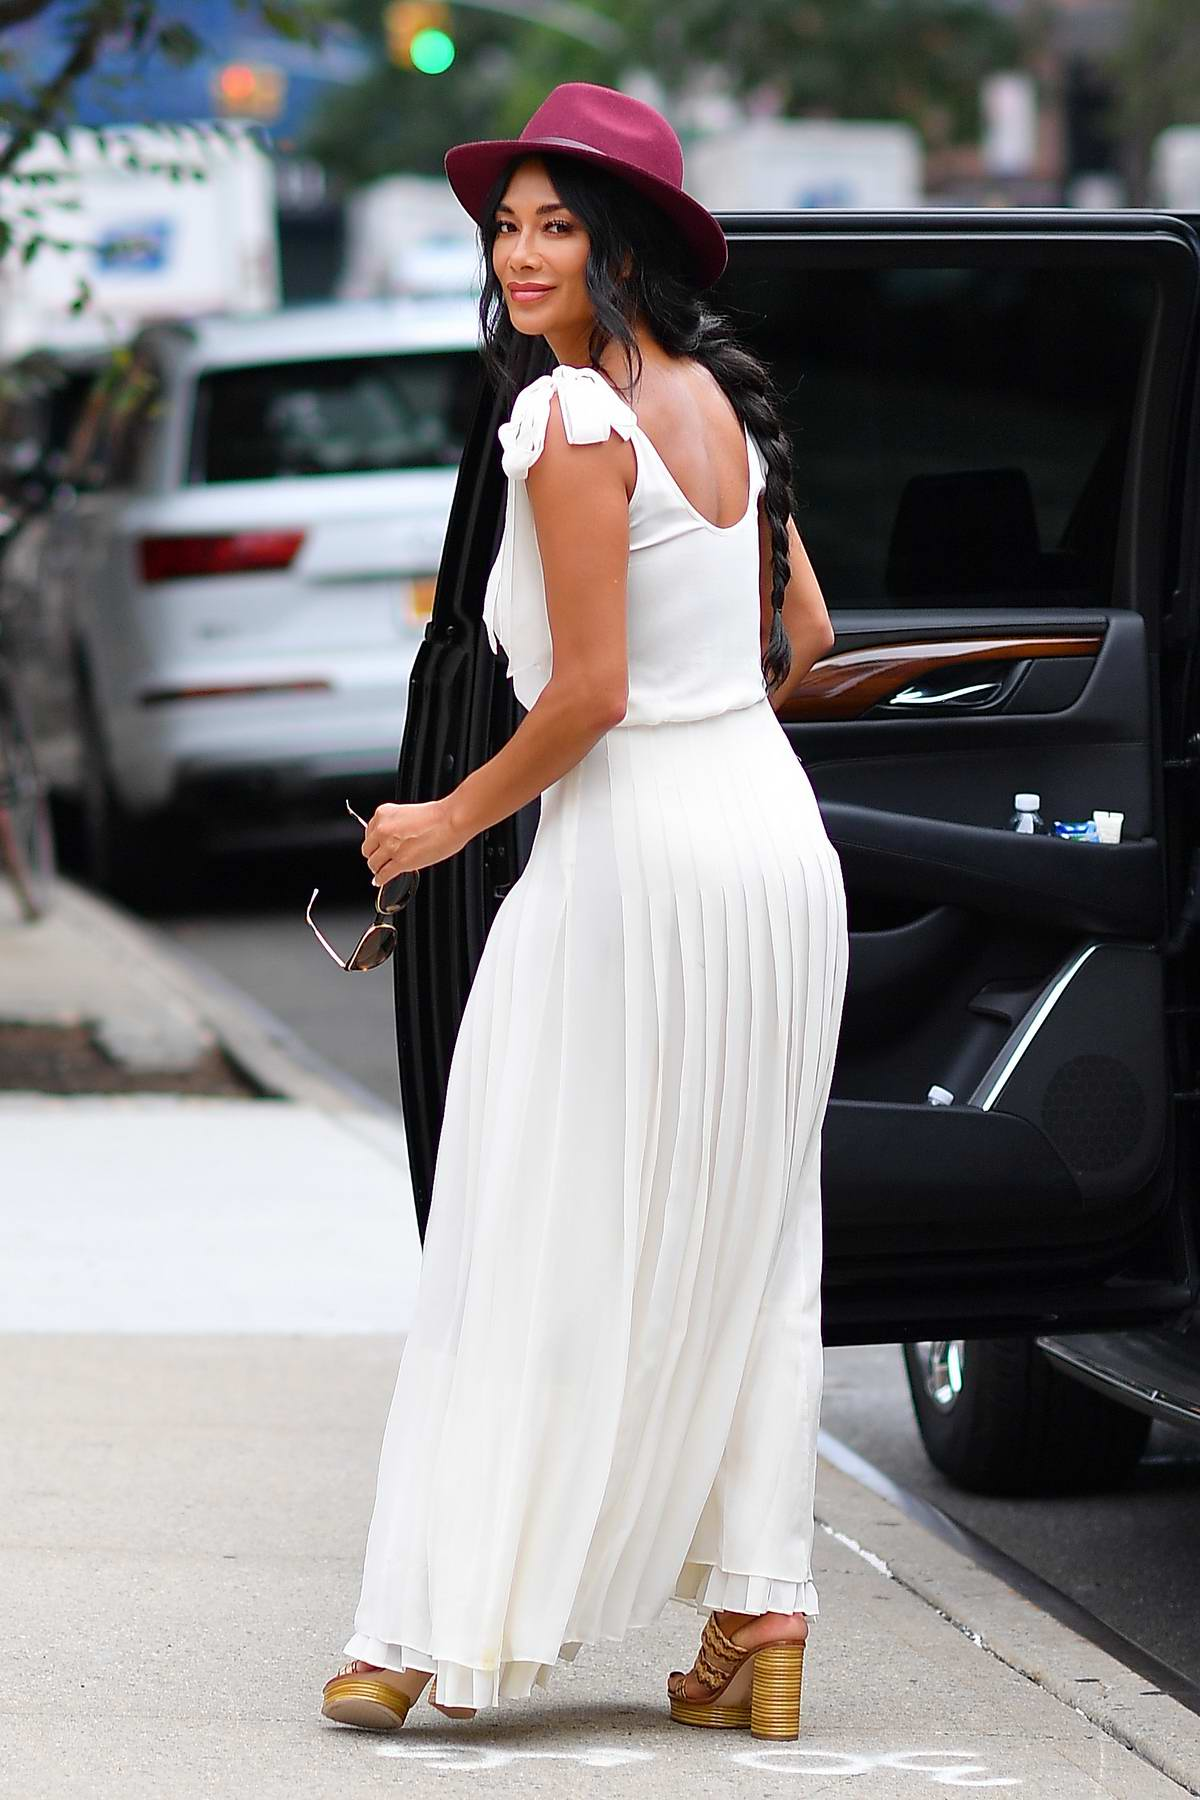 Nicole Scherzinger looks great in a white dress with maroon fedora while out in New York City